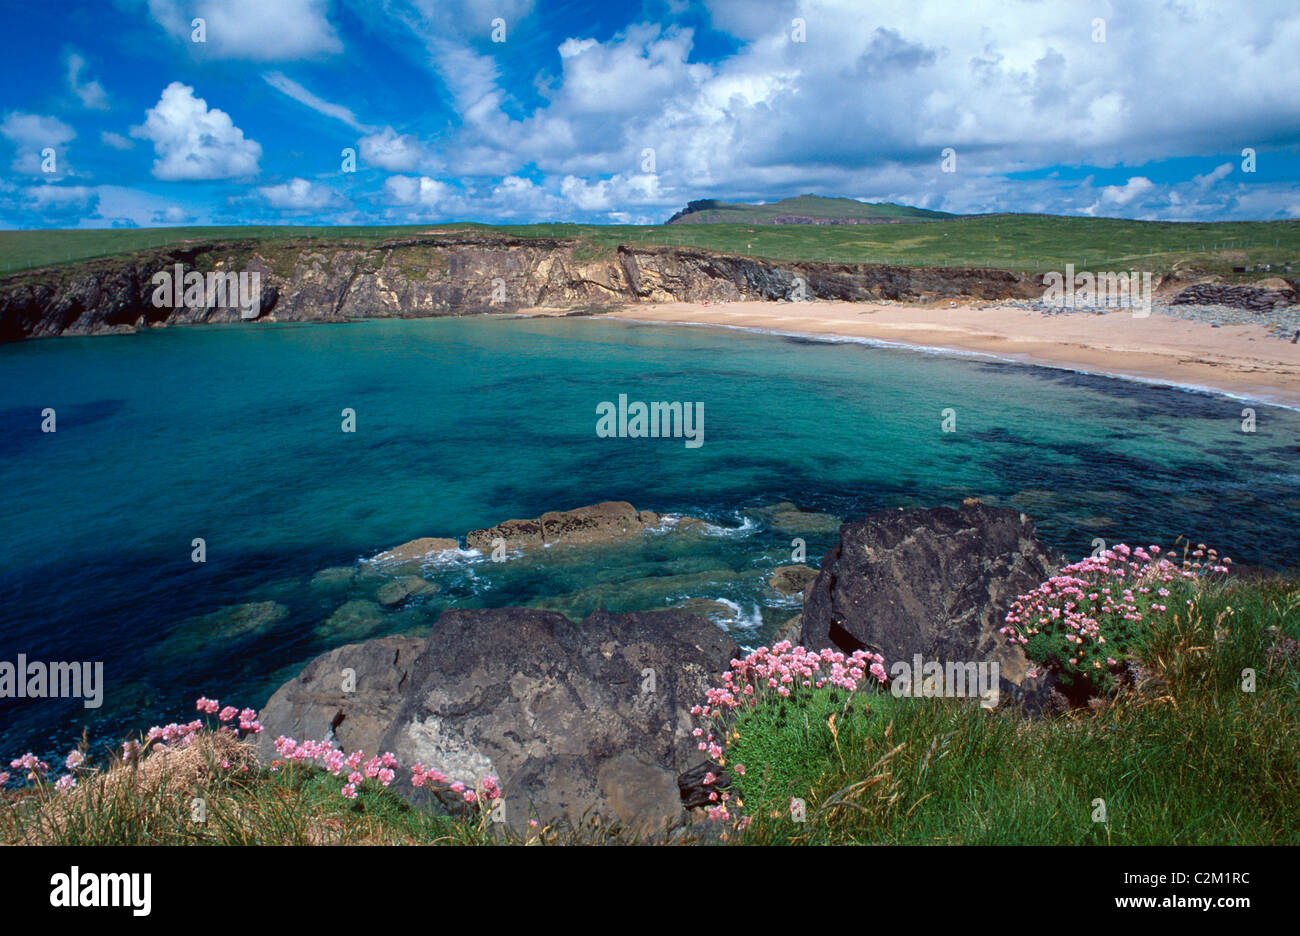 Thrift growing above Clogher Bay, Dingle Peninsula, County Kerry, Ireland. - Stock Image